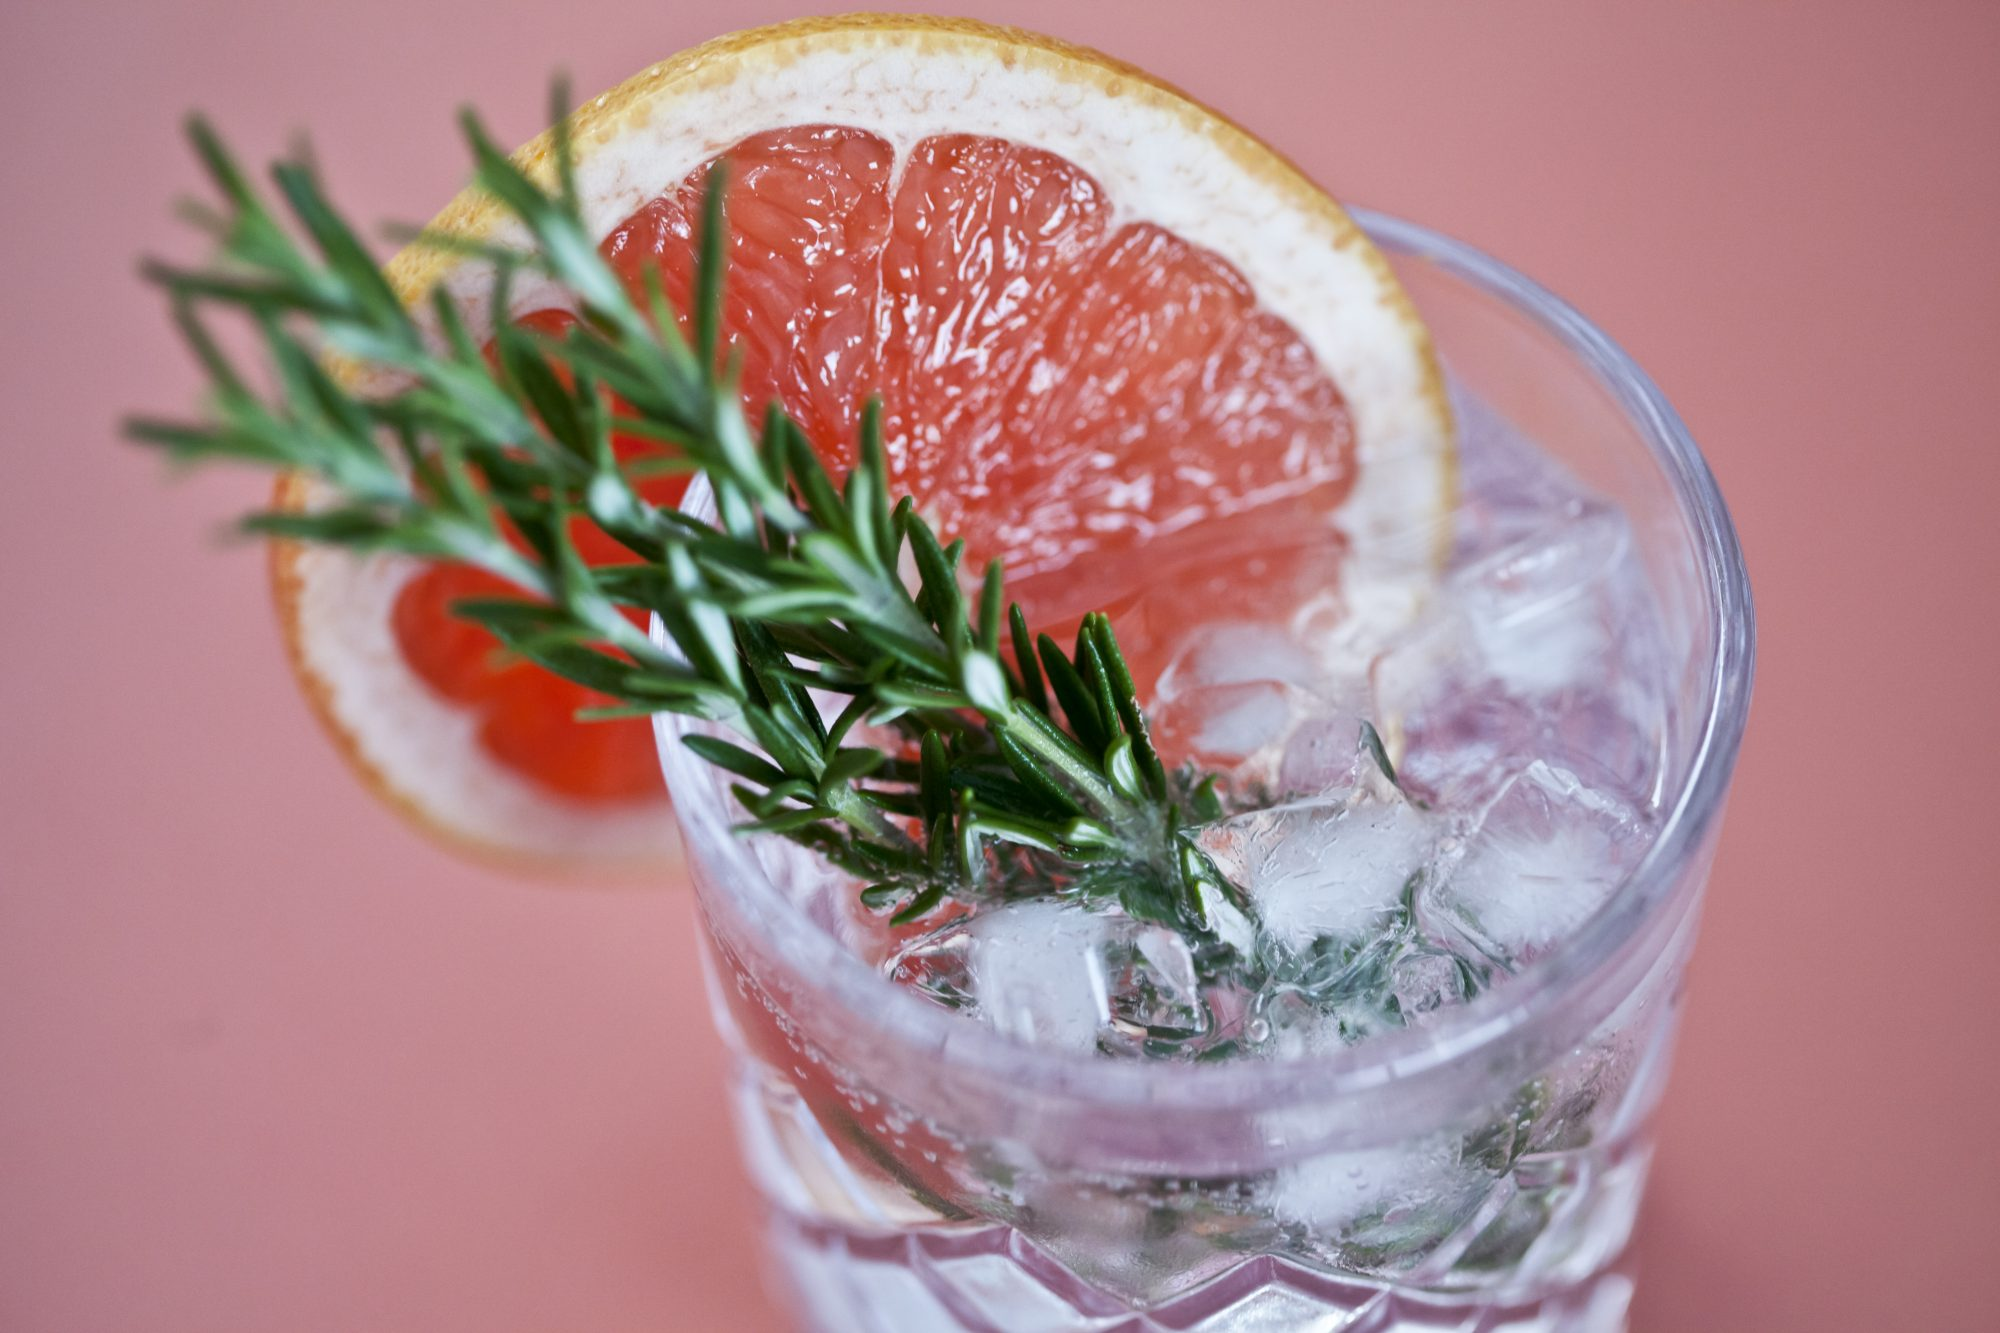 Gin and tonic with a slice of pink grapefruit and fresh herbs